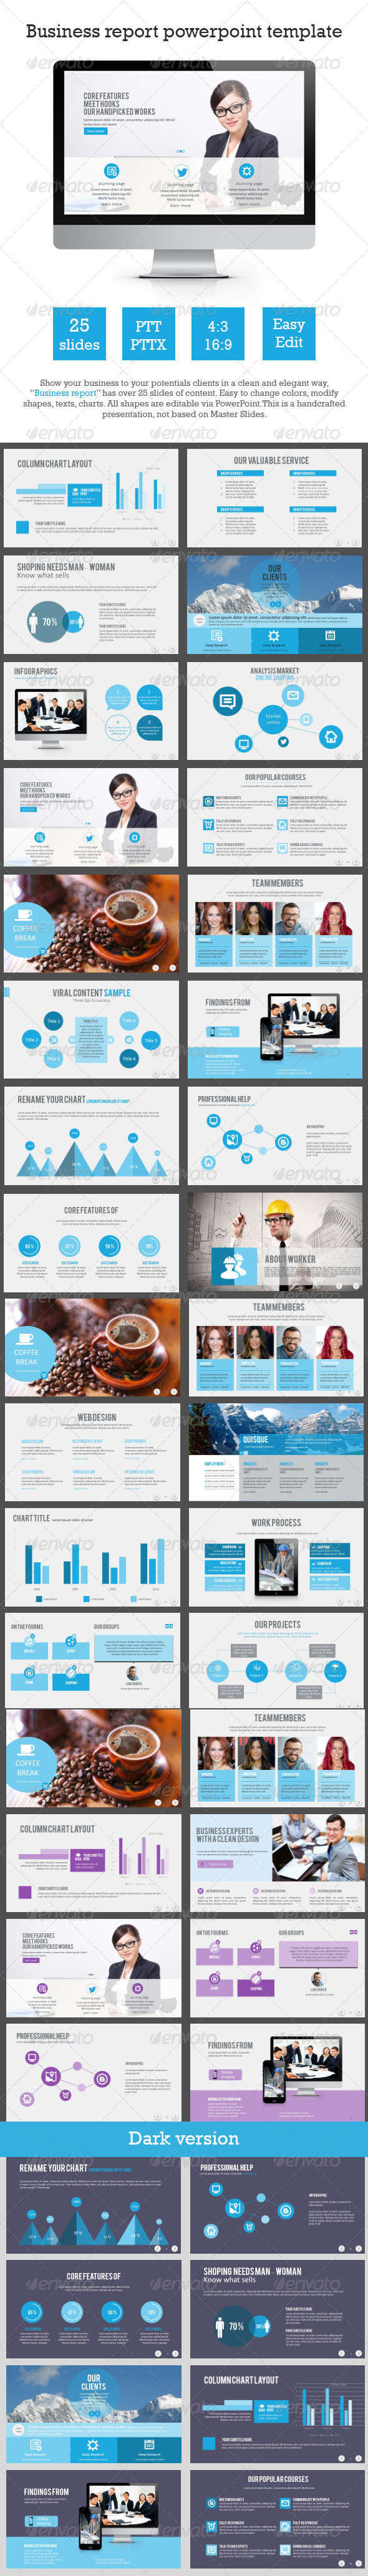 GraphicRiver Business Report Powerpoint Template 8321476